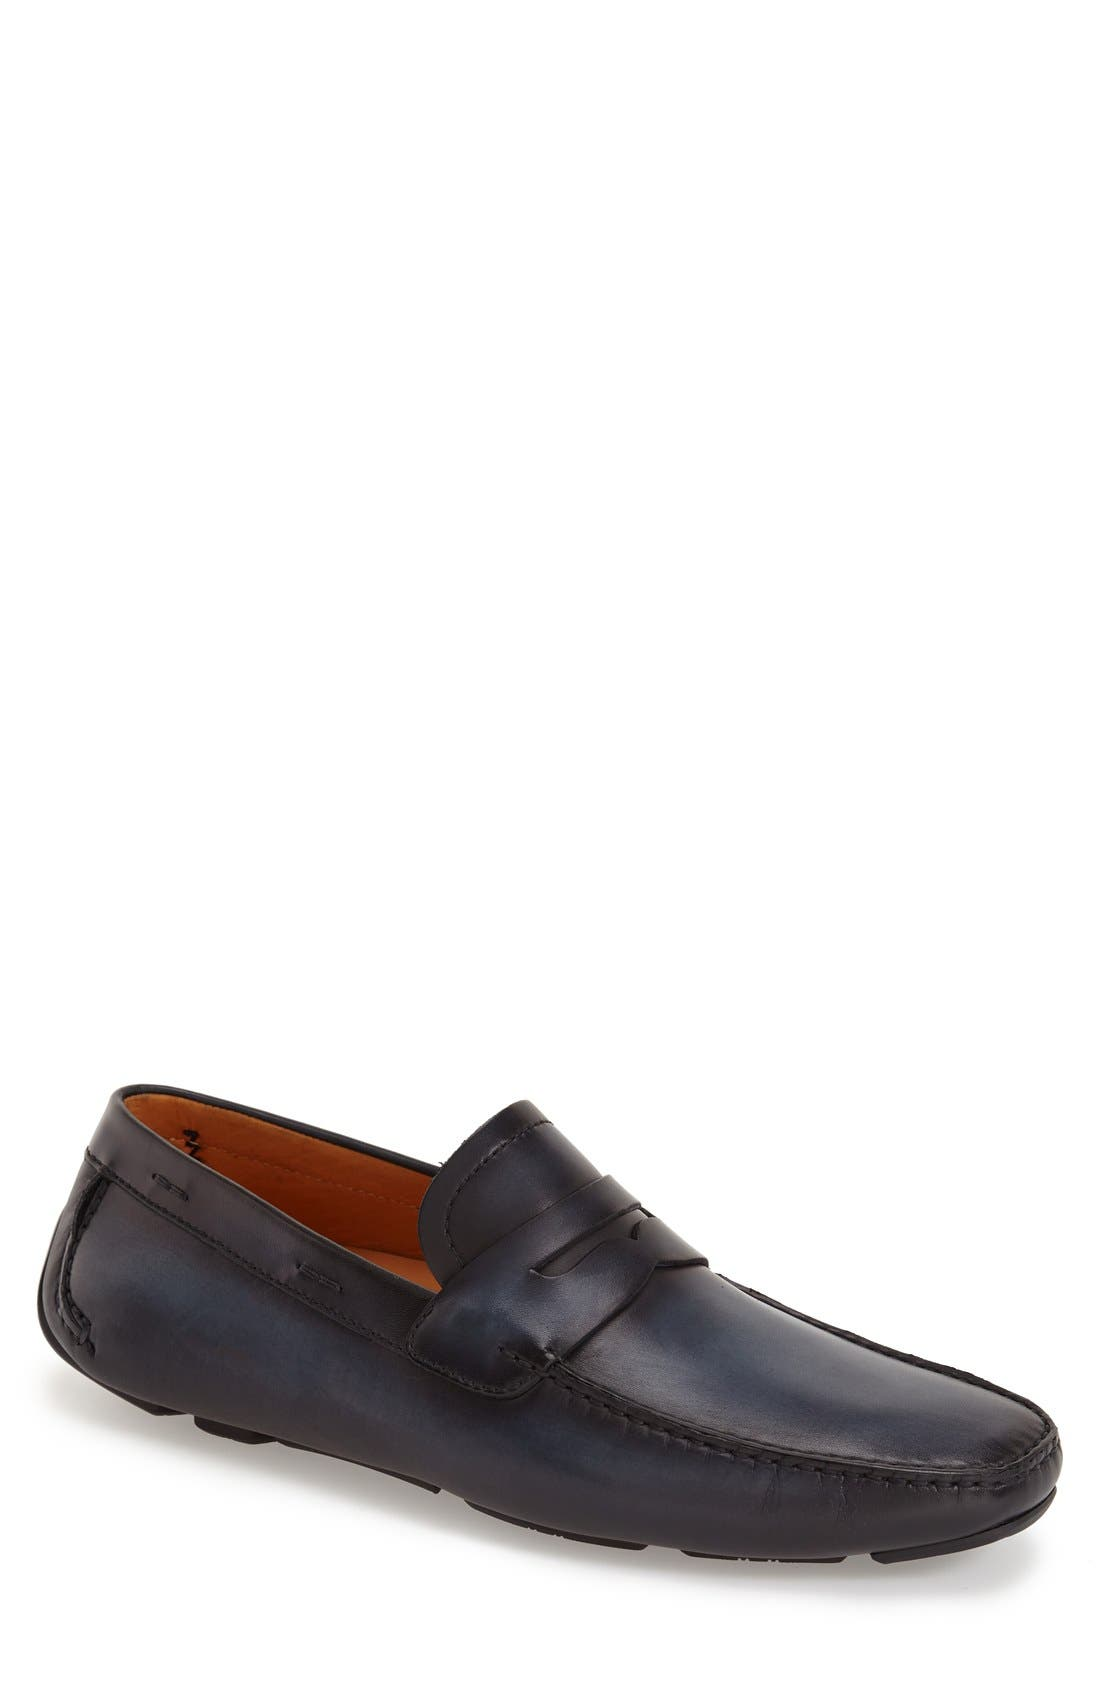 'Dylan' Leather Driving Shoe,                             Main thumbnail 2, color,